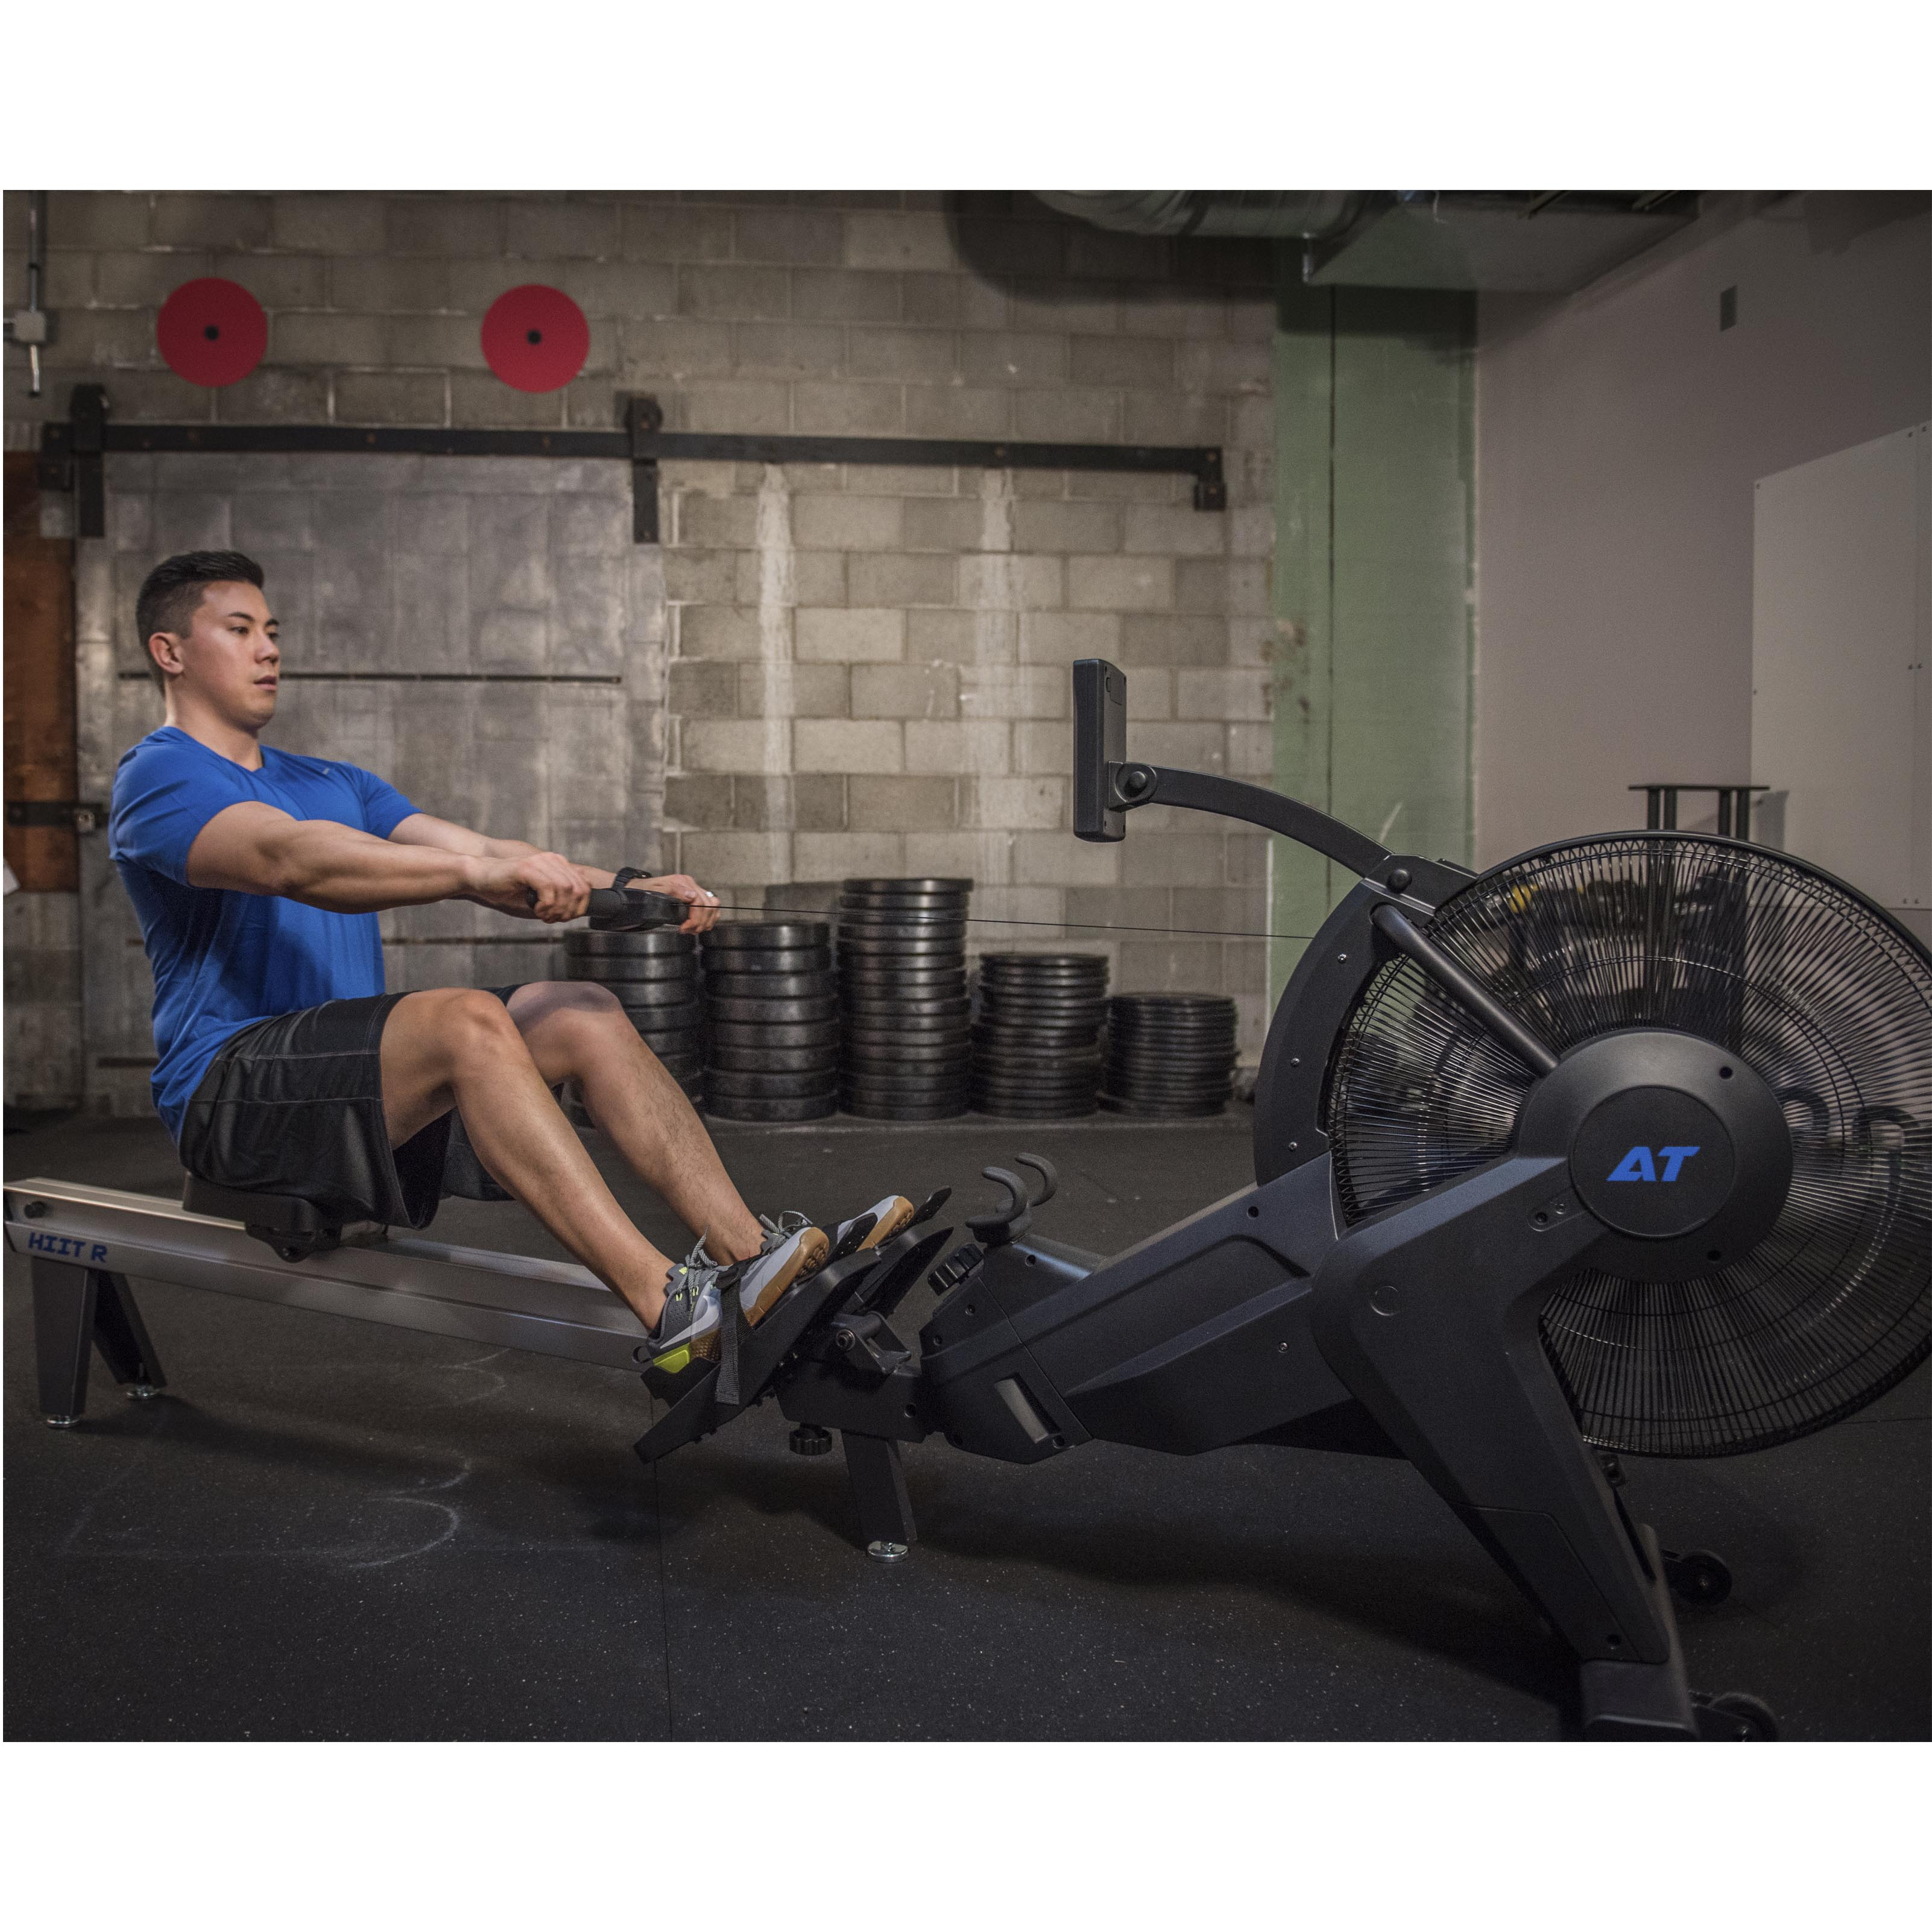 AirTEK Fitness HIIT Air and Magnetic Rower Model